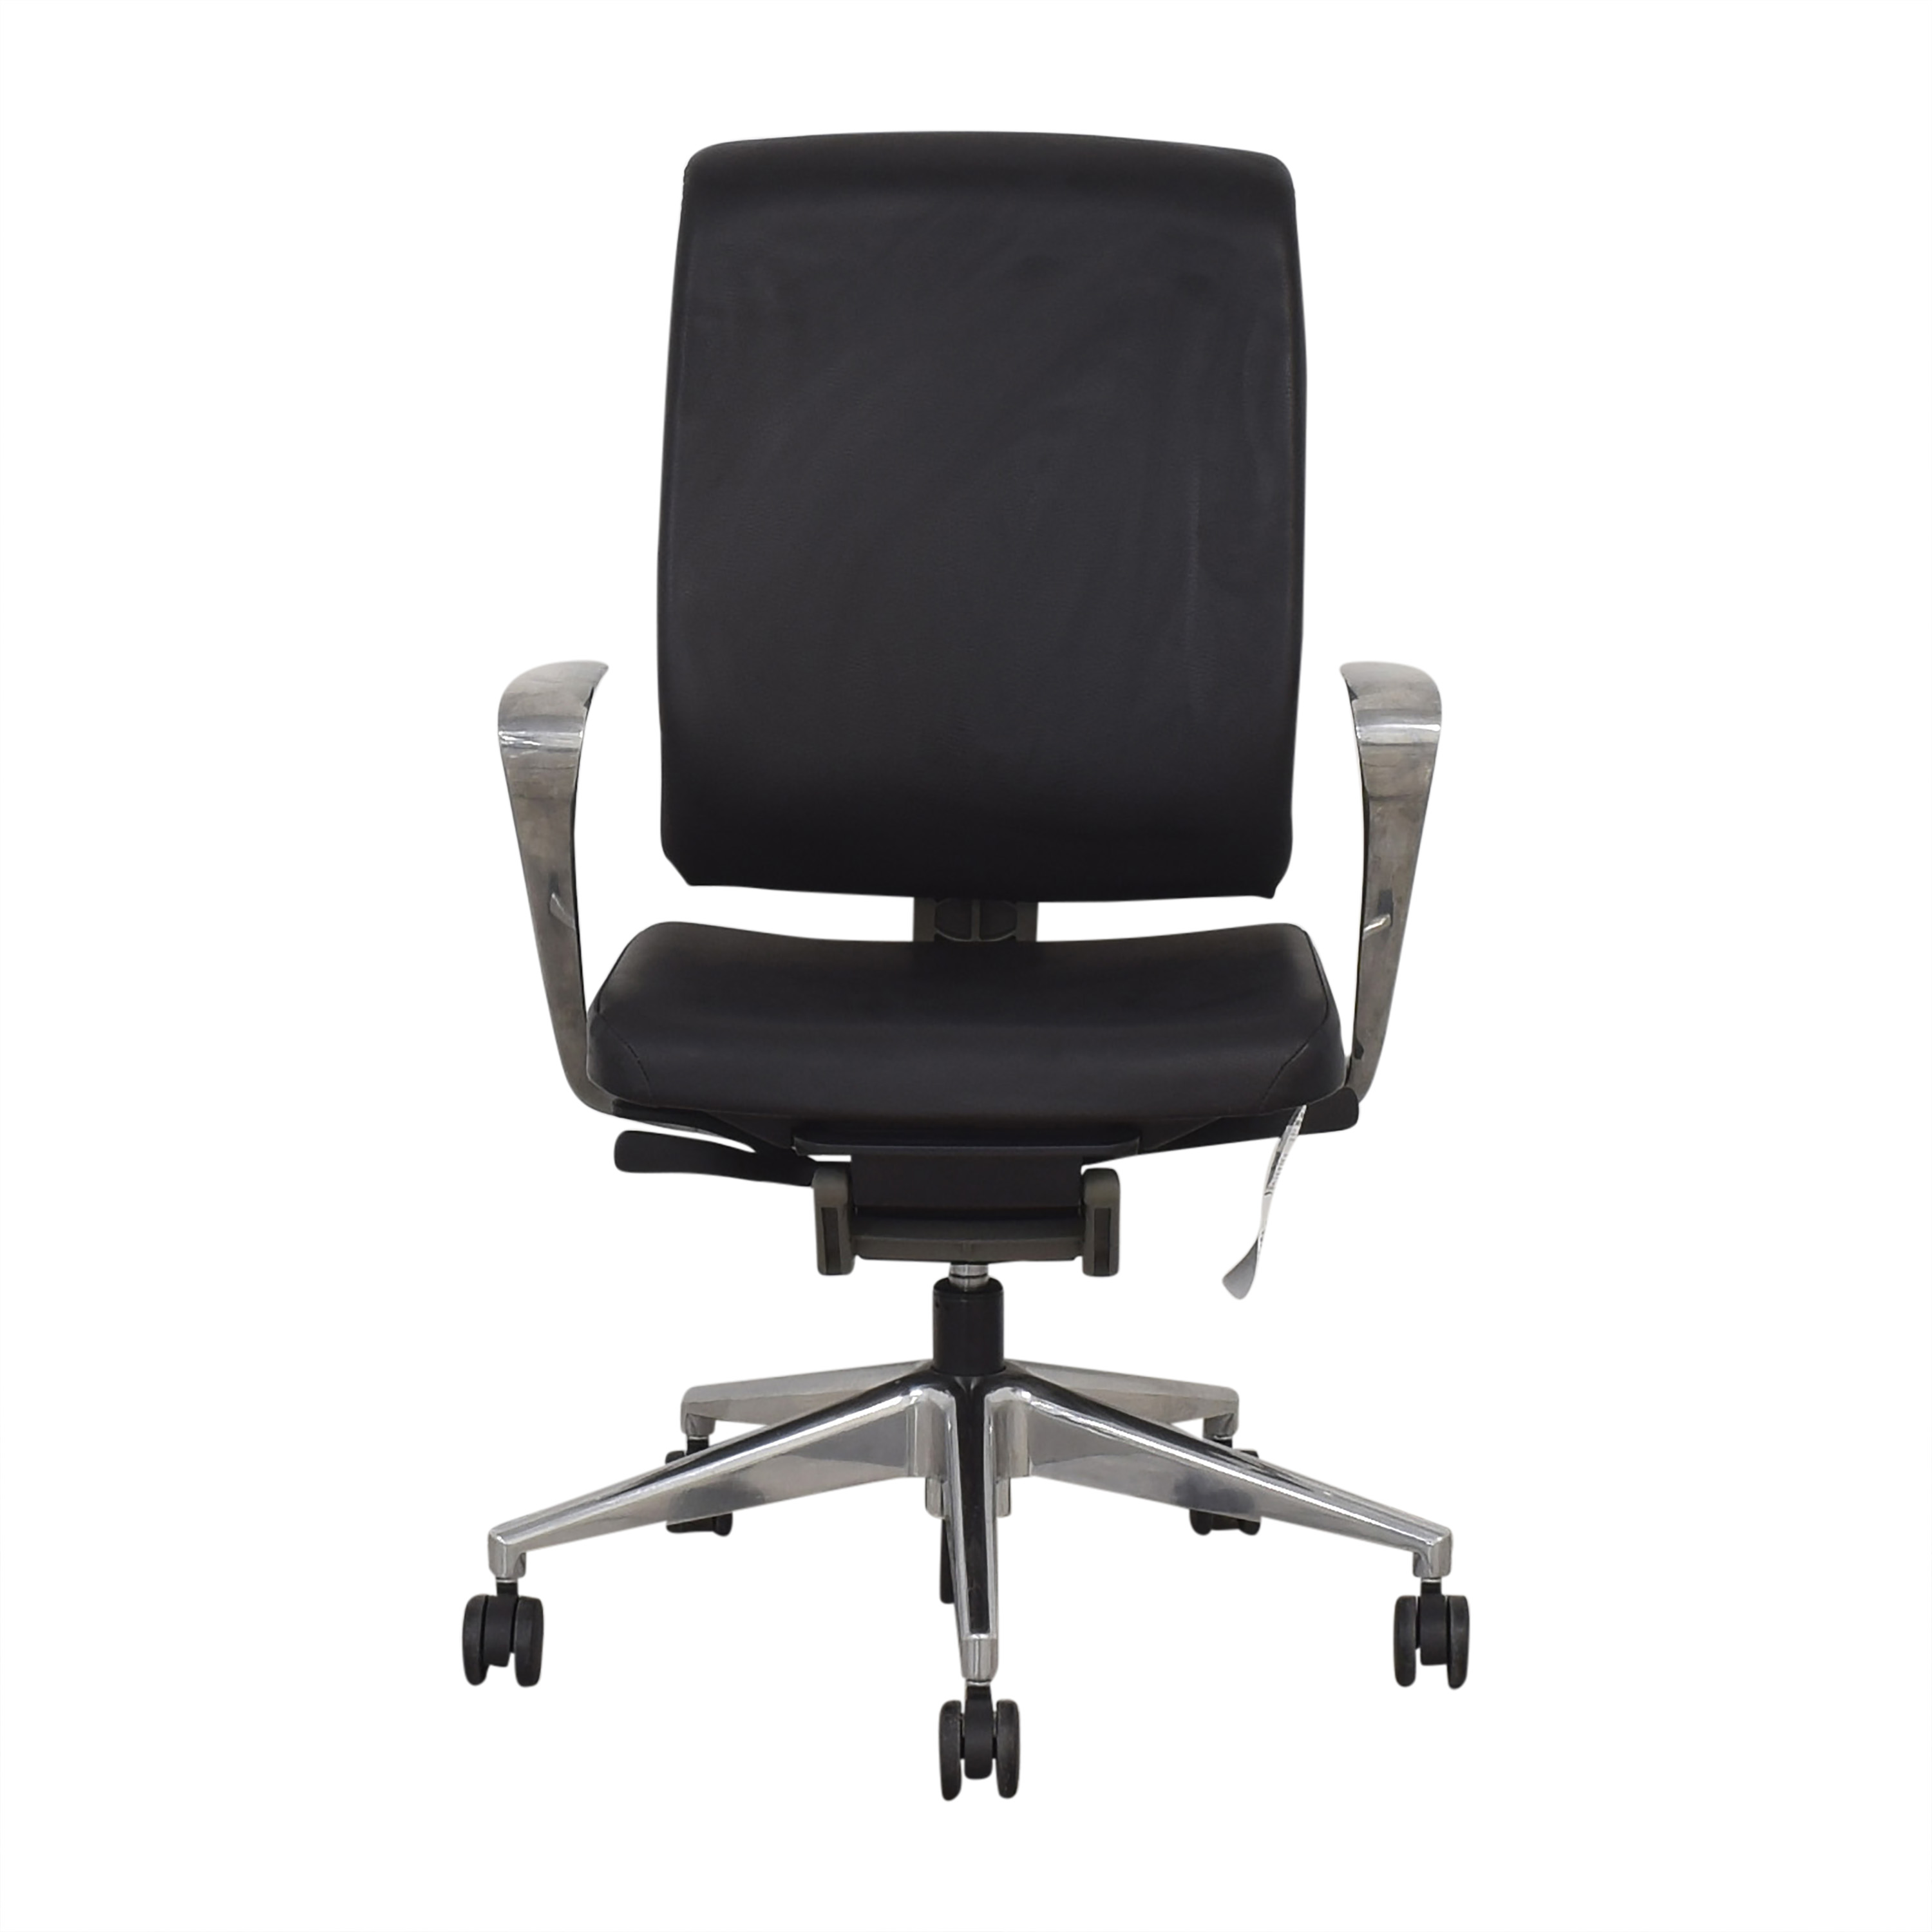 shop Allsteel Allsteel Task Chair online